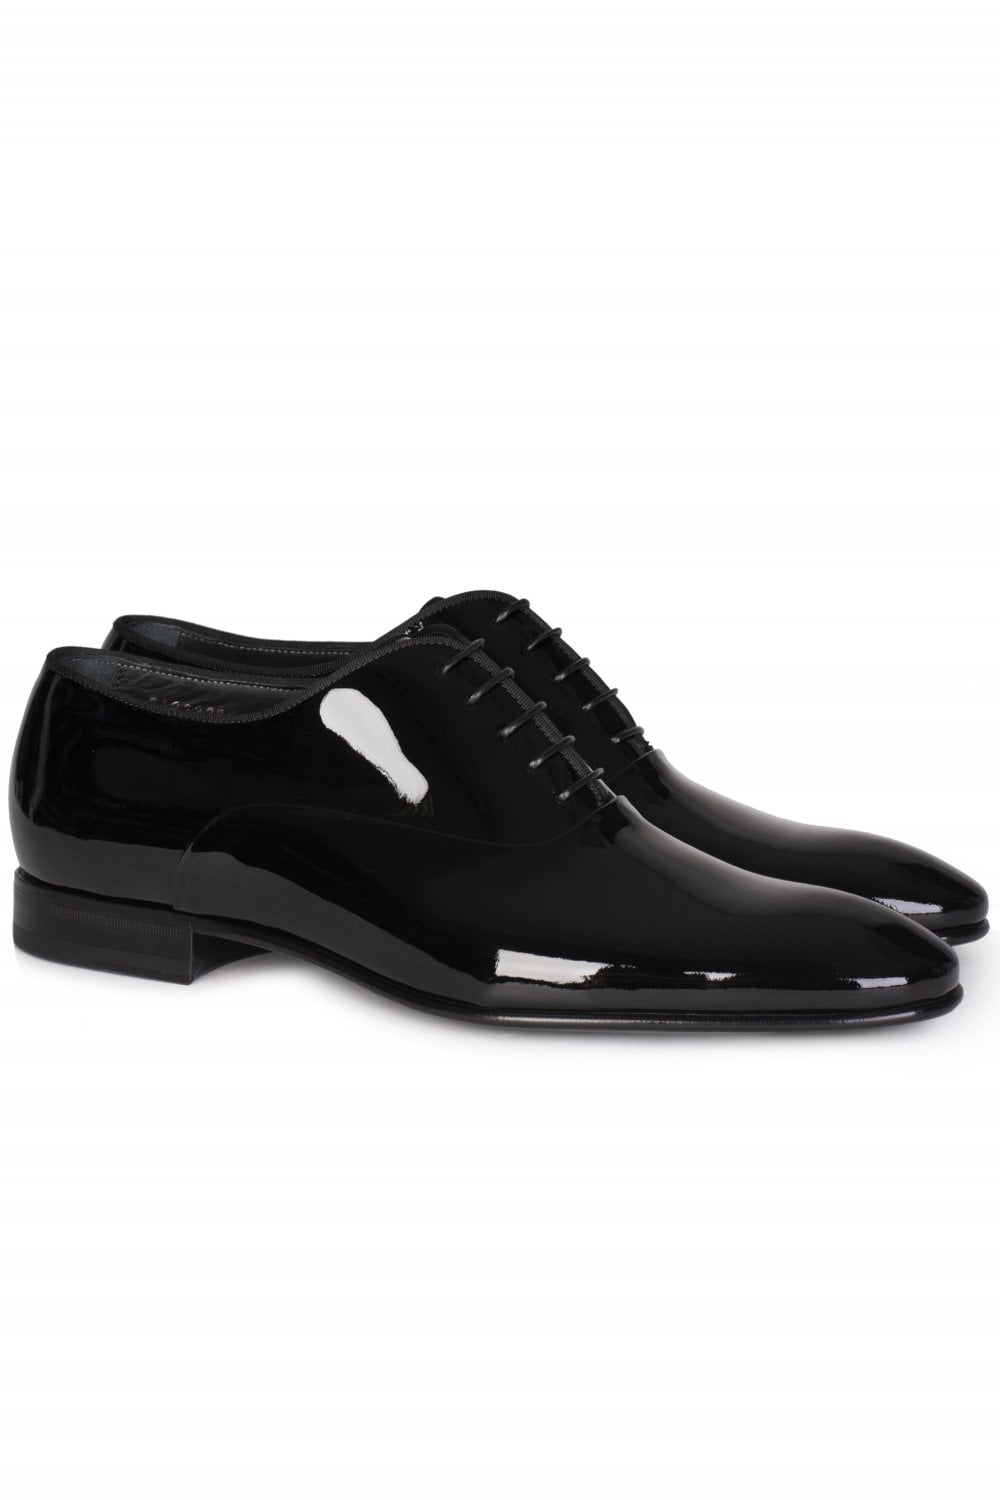 b57882687e402 BOSS Hugo Boss Patent Leather Oxford Shoes - Clothing from Circle ...